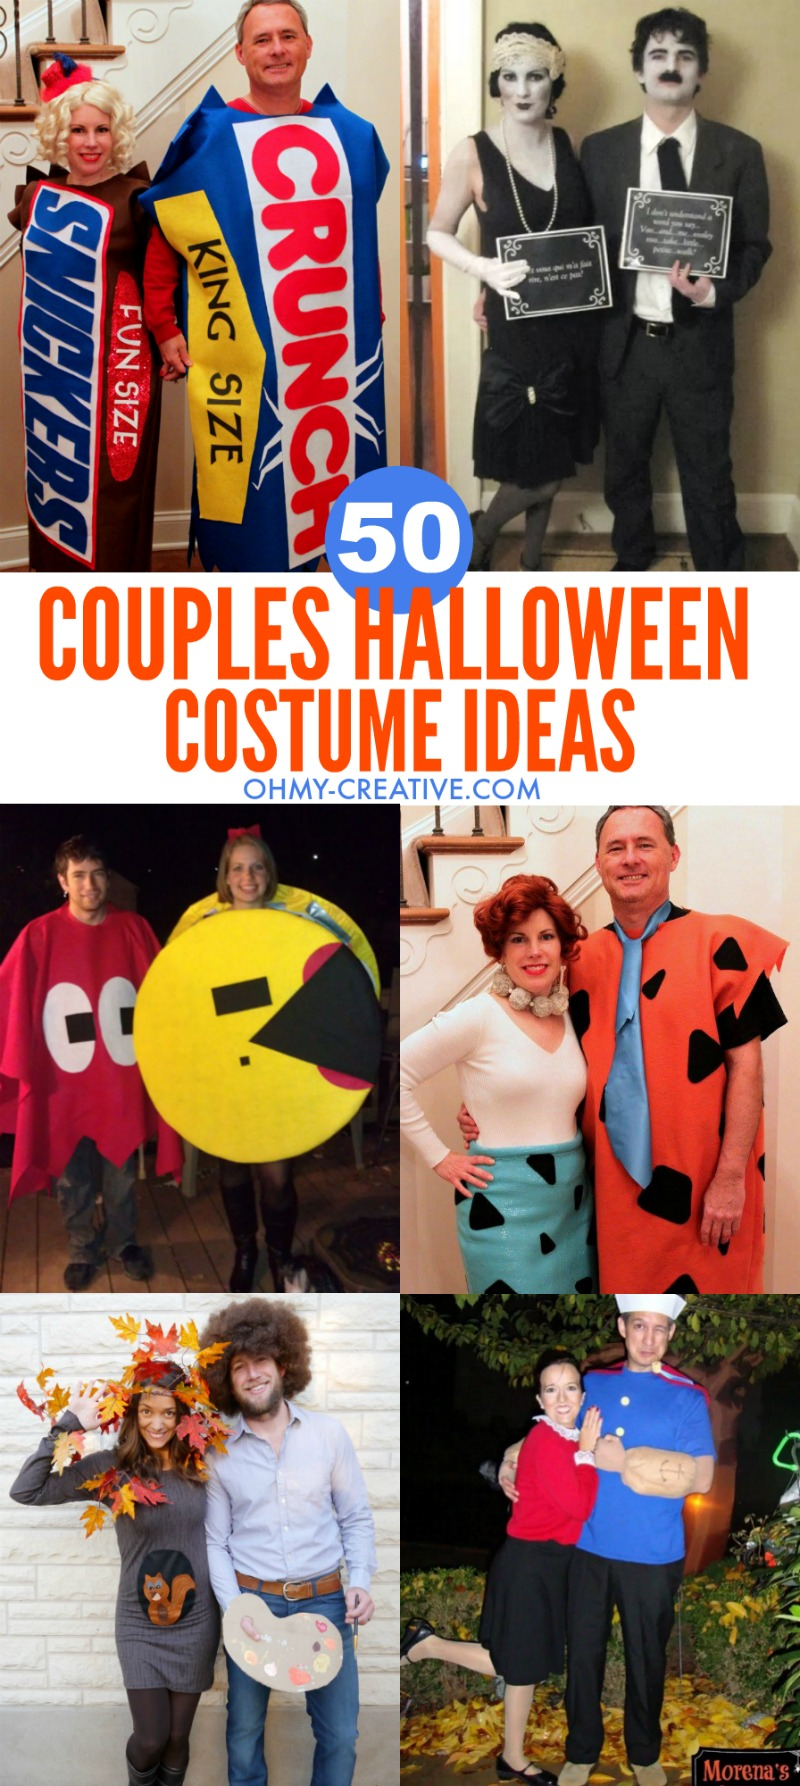 Creative Halloween Makeup Ideas A Subtle Revelry: 50 Couples Halloween Costume Ideas